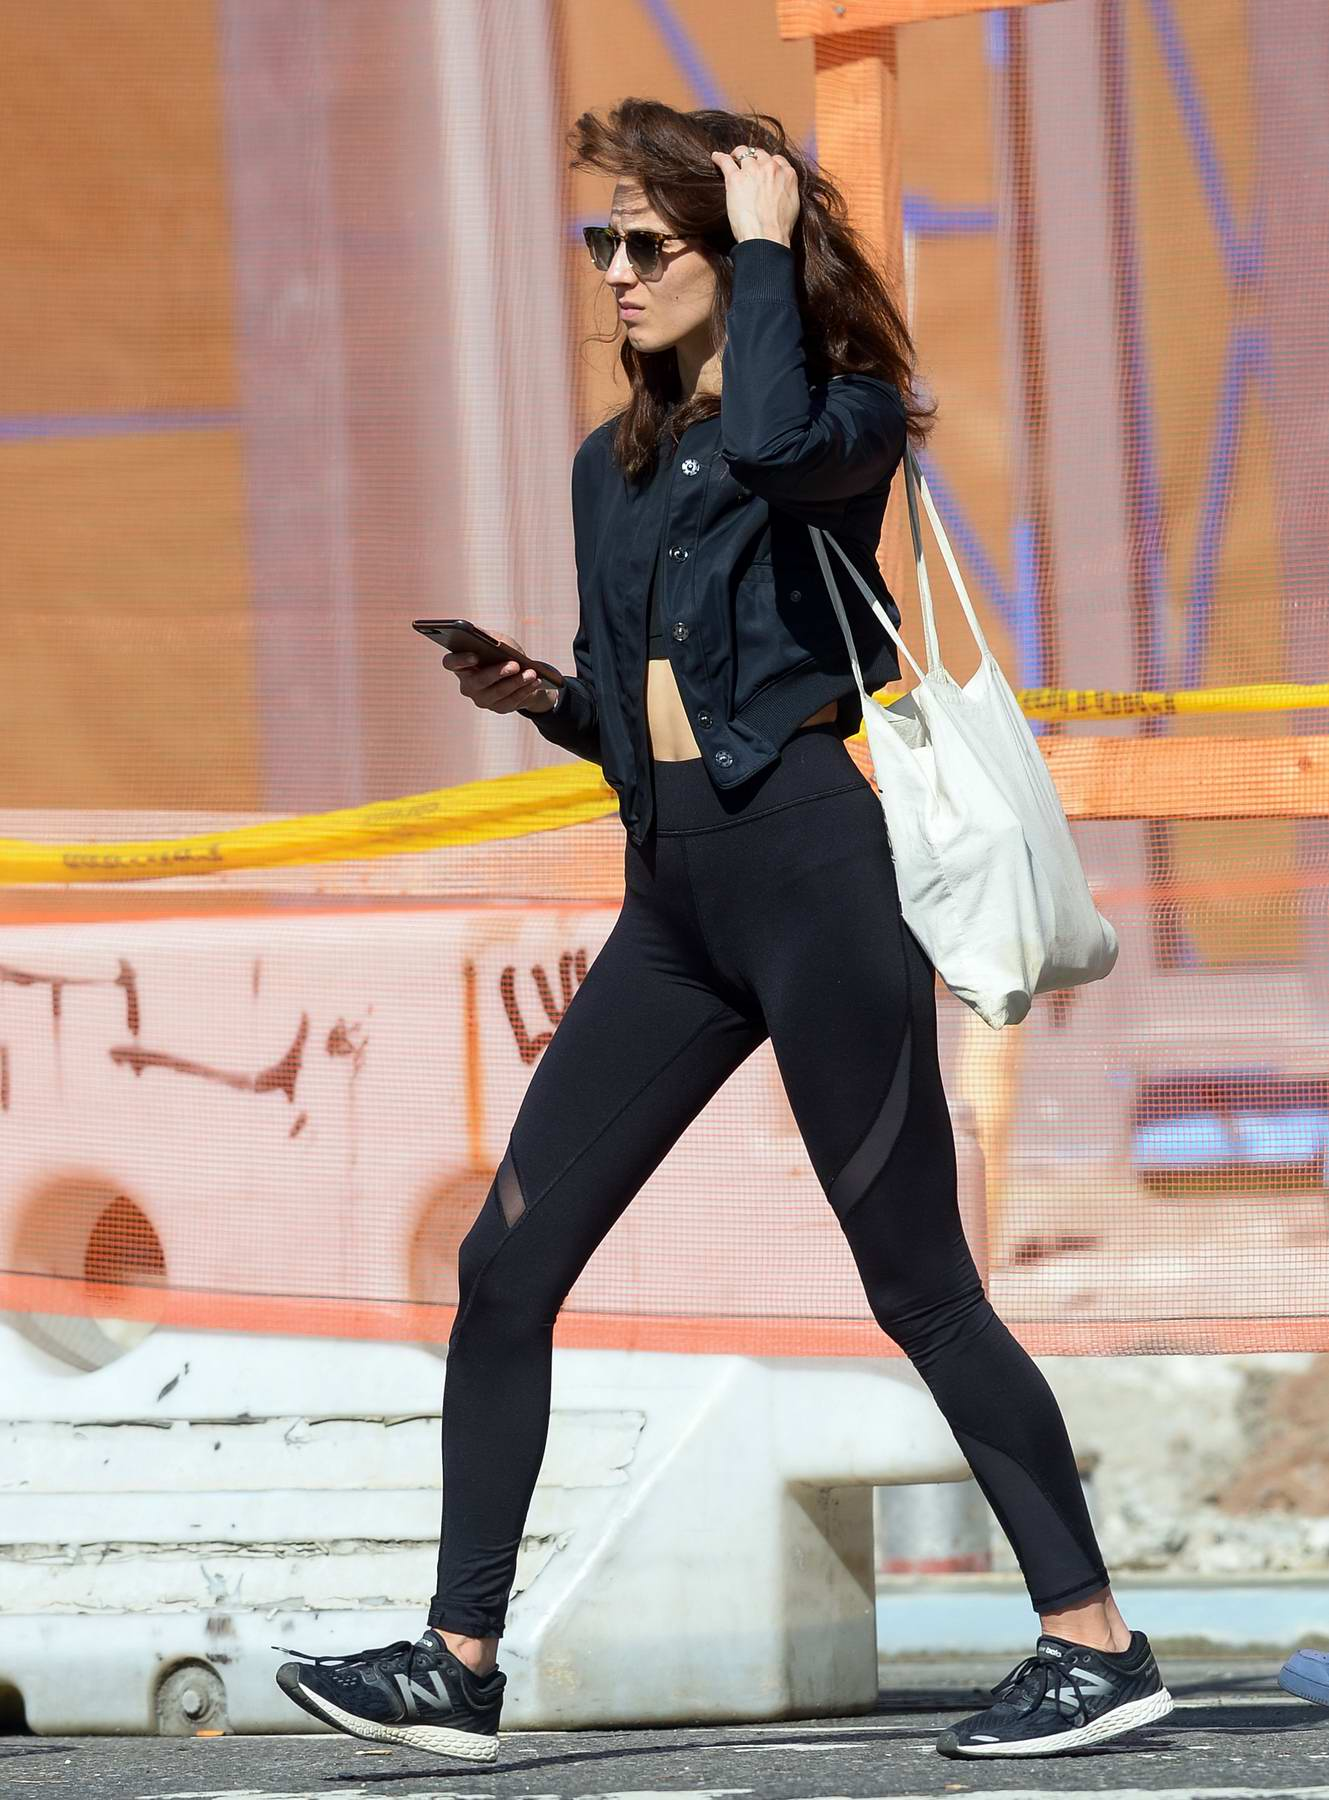 Trojan Bellisario spotted in her Gym Gear on her way for a Workout in Downtown, New York